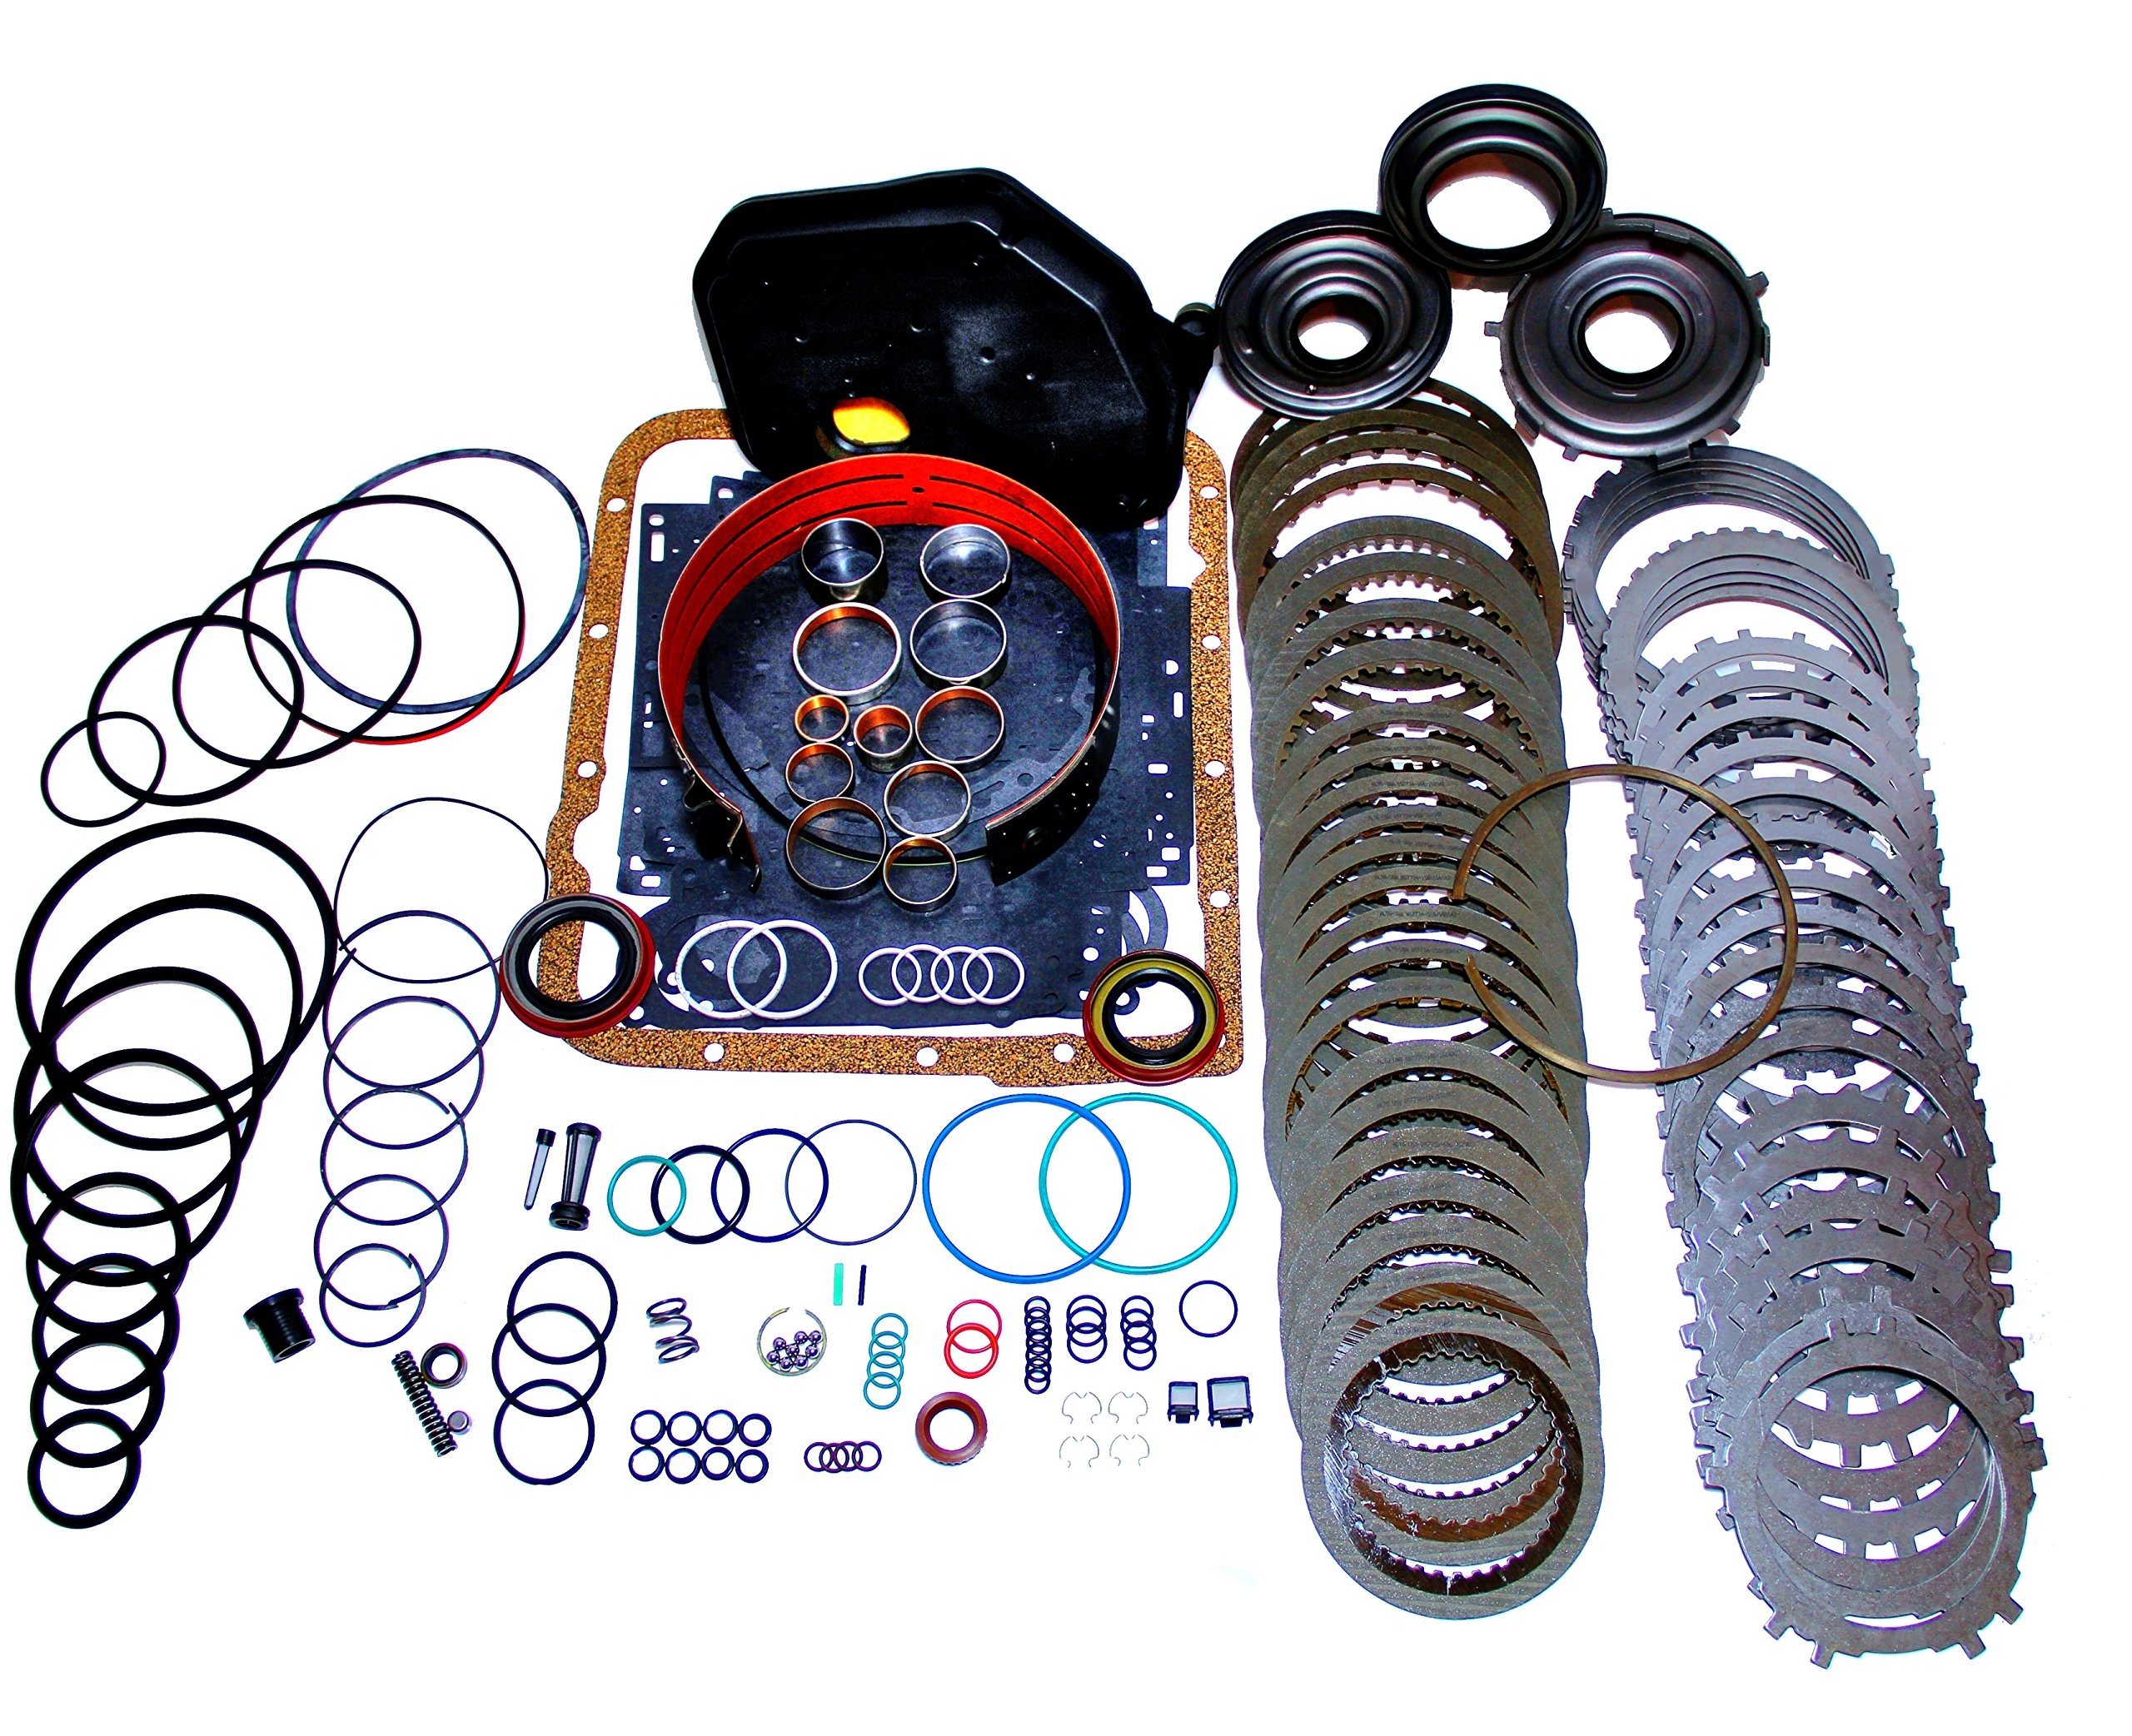 4L60E Transmission Rebuild Kit Heavy Duty Master Kit with 3-4 Power-pack by World Wide Parts Outlet